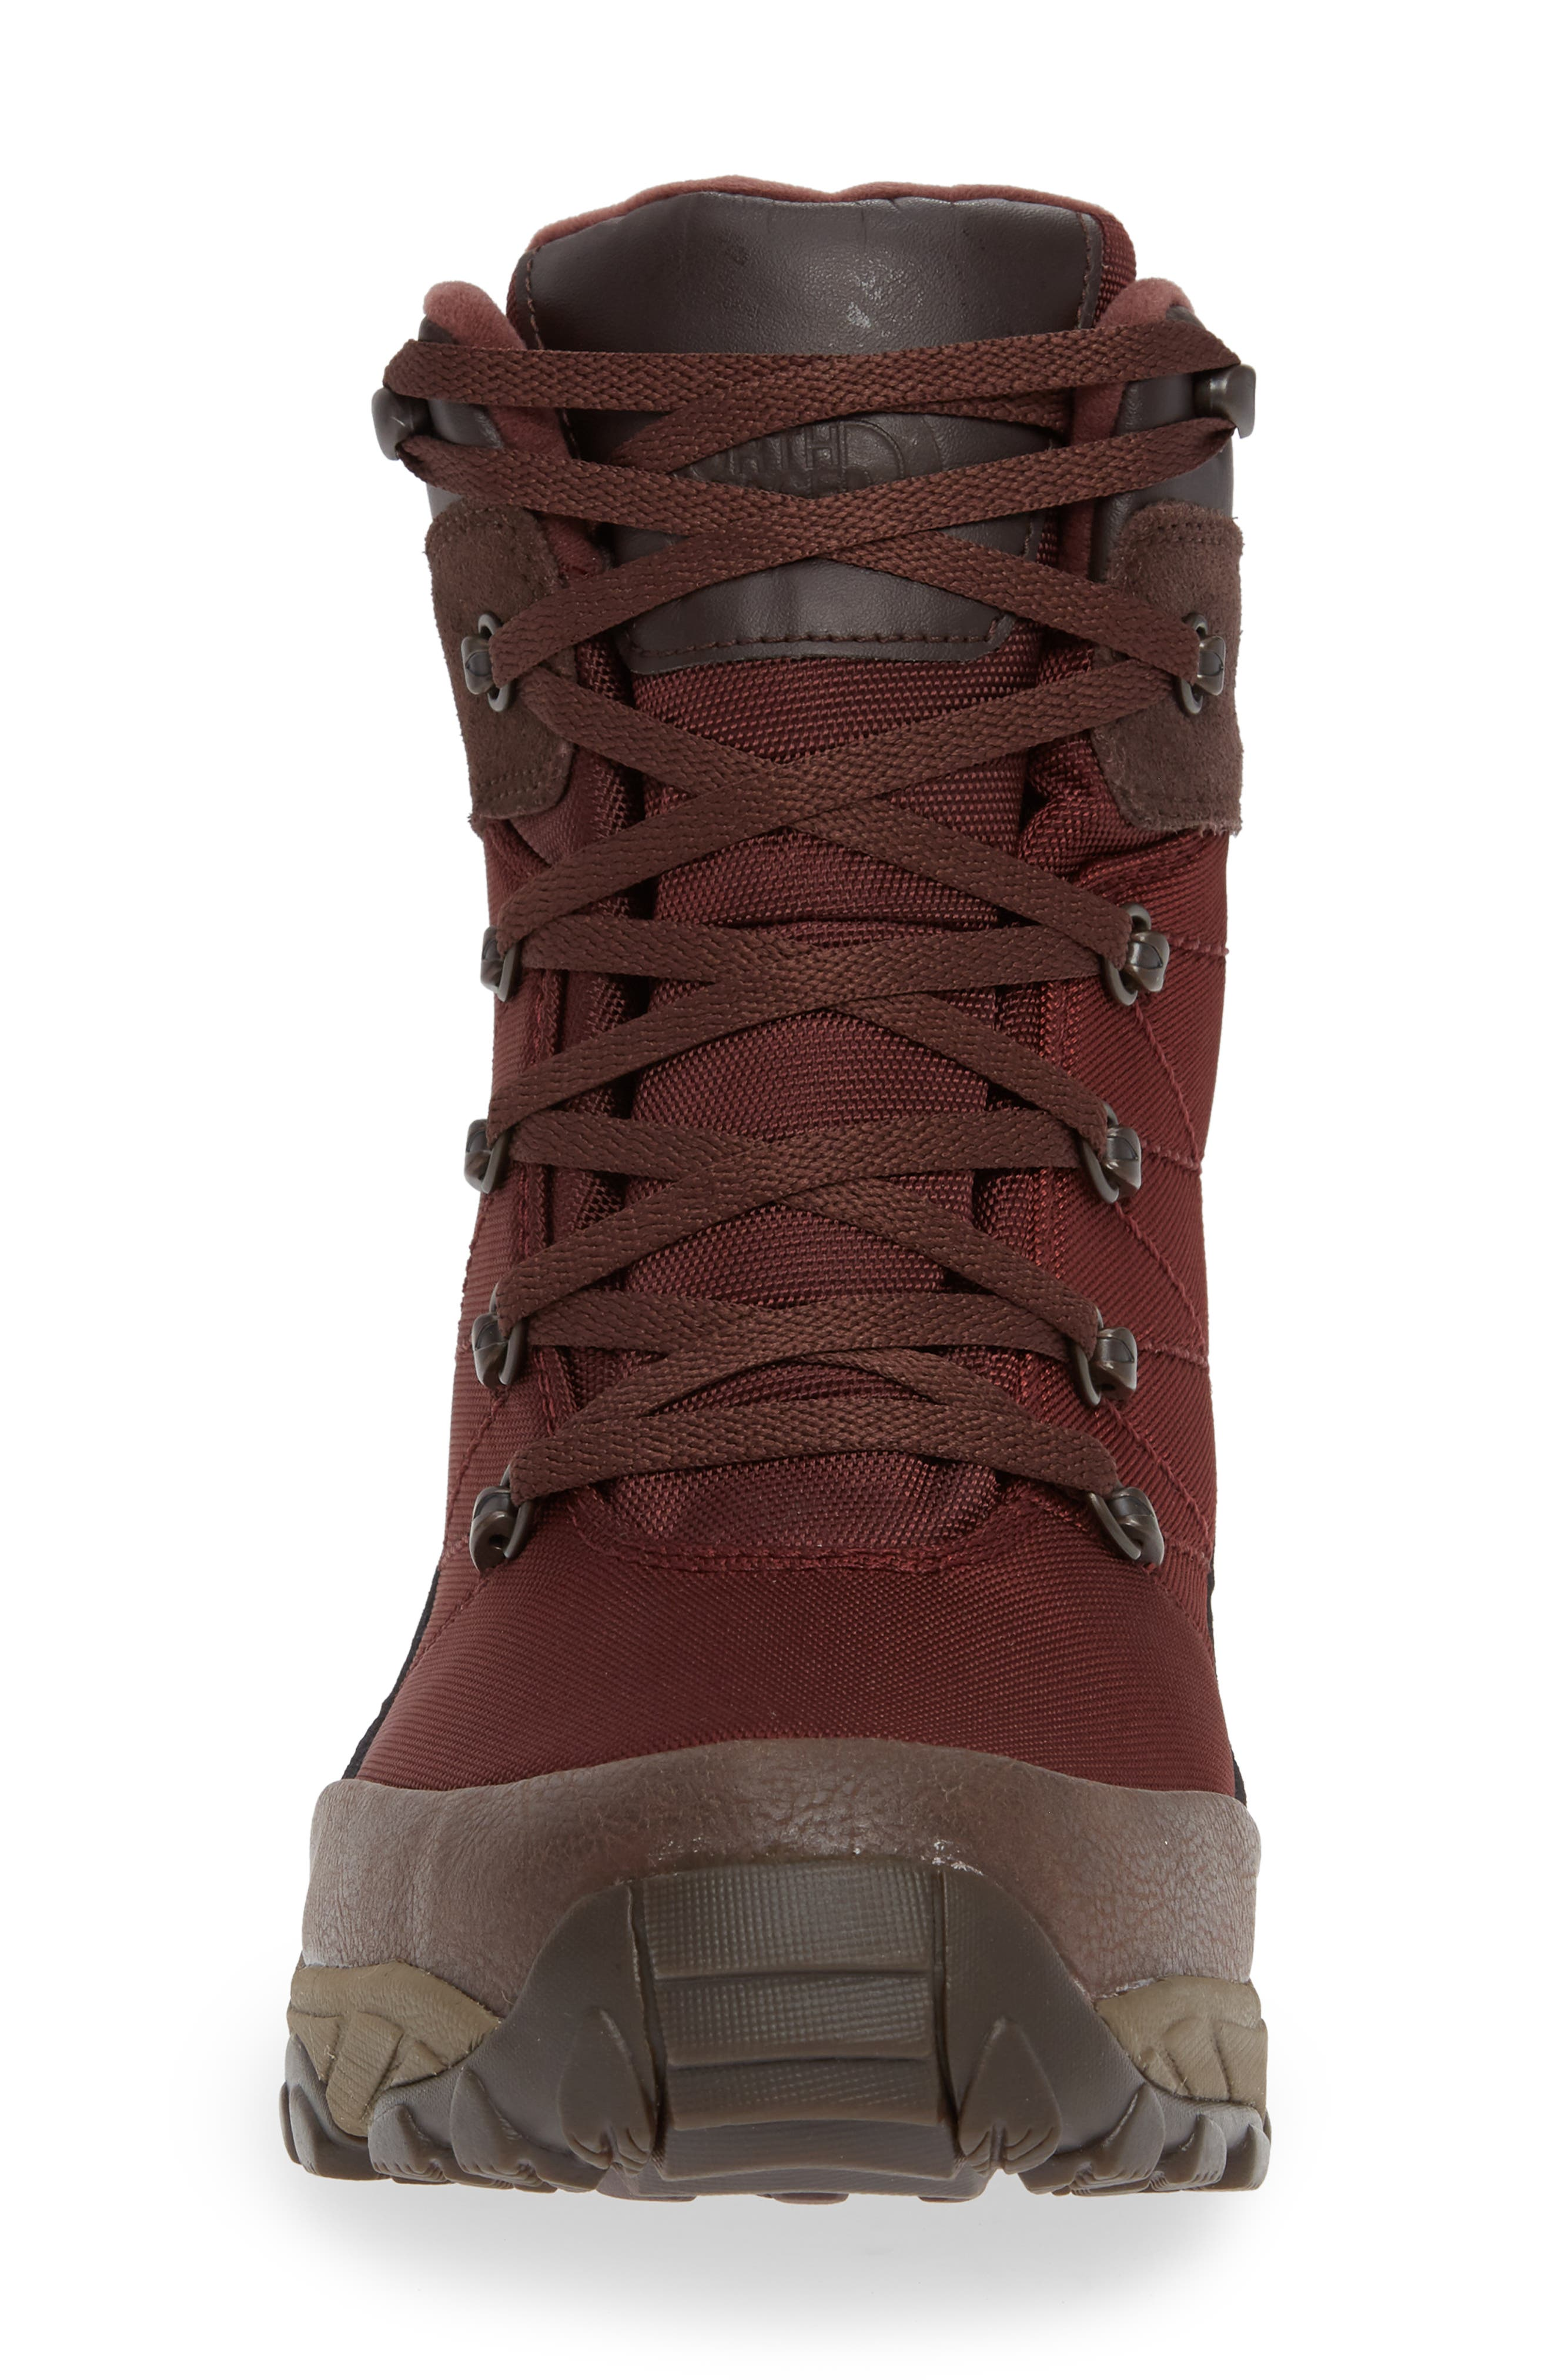 Chilkat Snow Waterproof Boot,                             Alternate thumbnail 4, color,                             BITTER CHOCOLATE BROWN